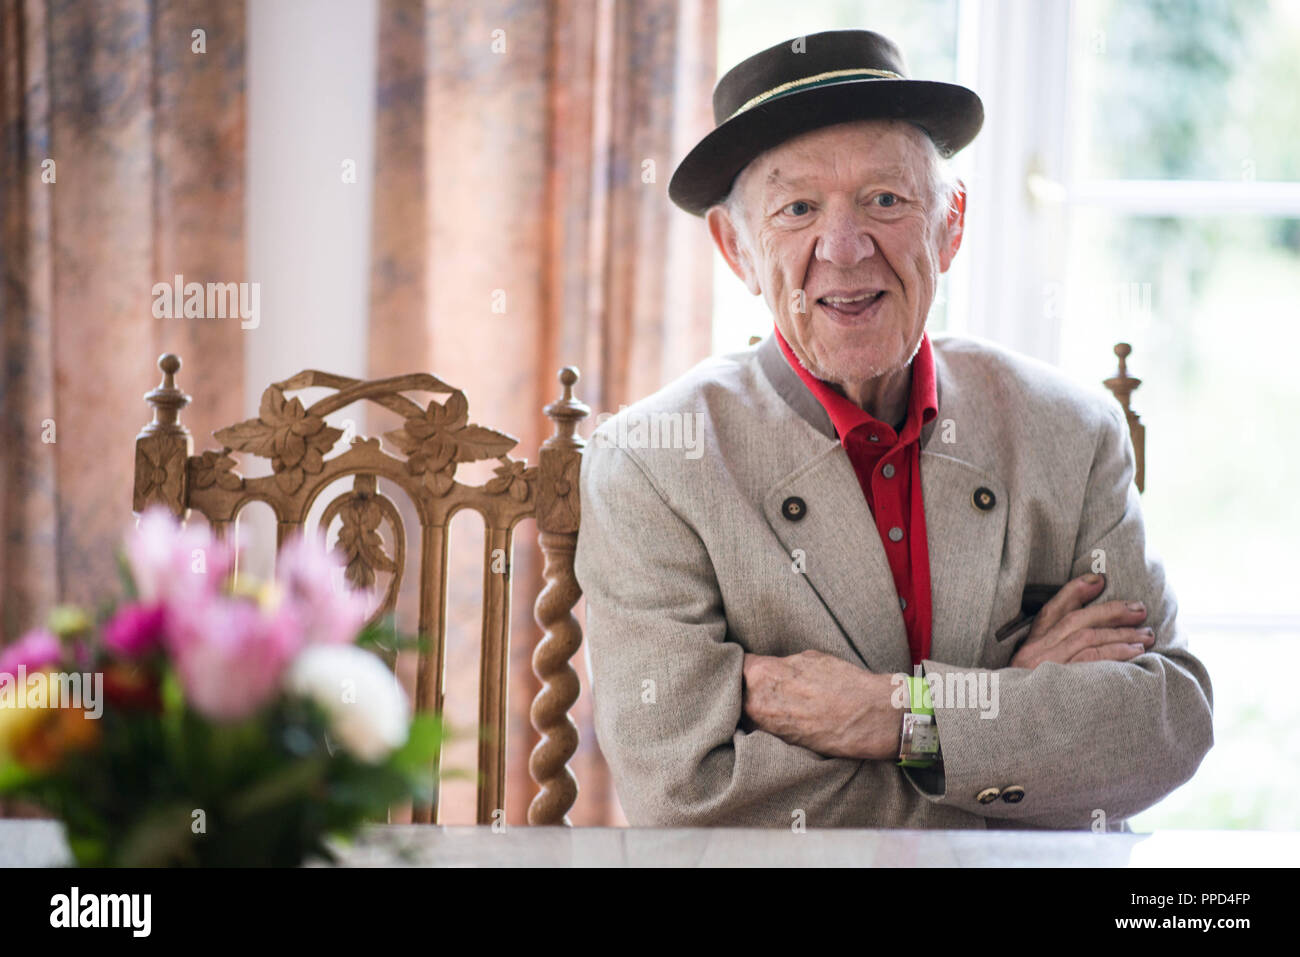 The Russian clown and mime Oleg Konstantinovich Popov, the last living circus clown of international fame of the 20th century, in his dwelling-house in Egloffstein in Franconian Switzerland. - Stock Image